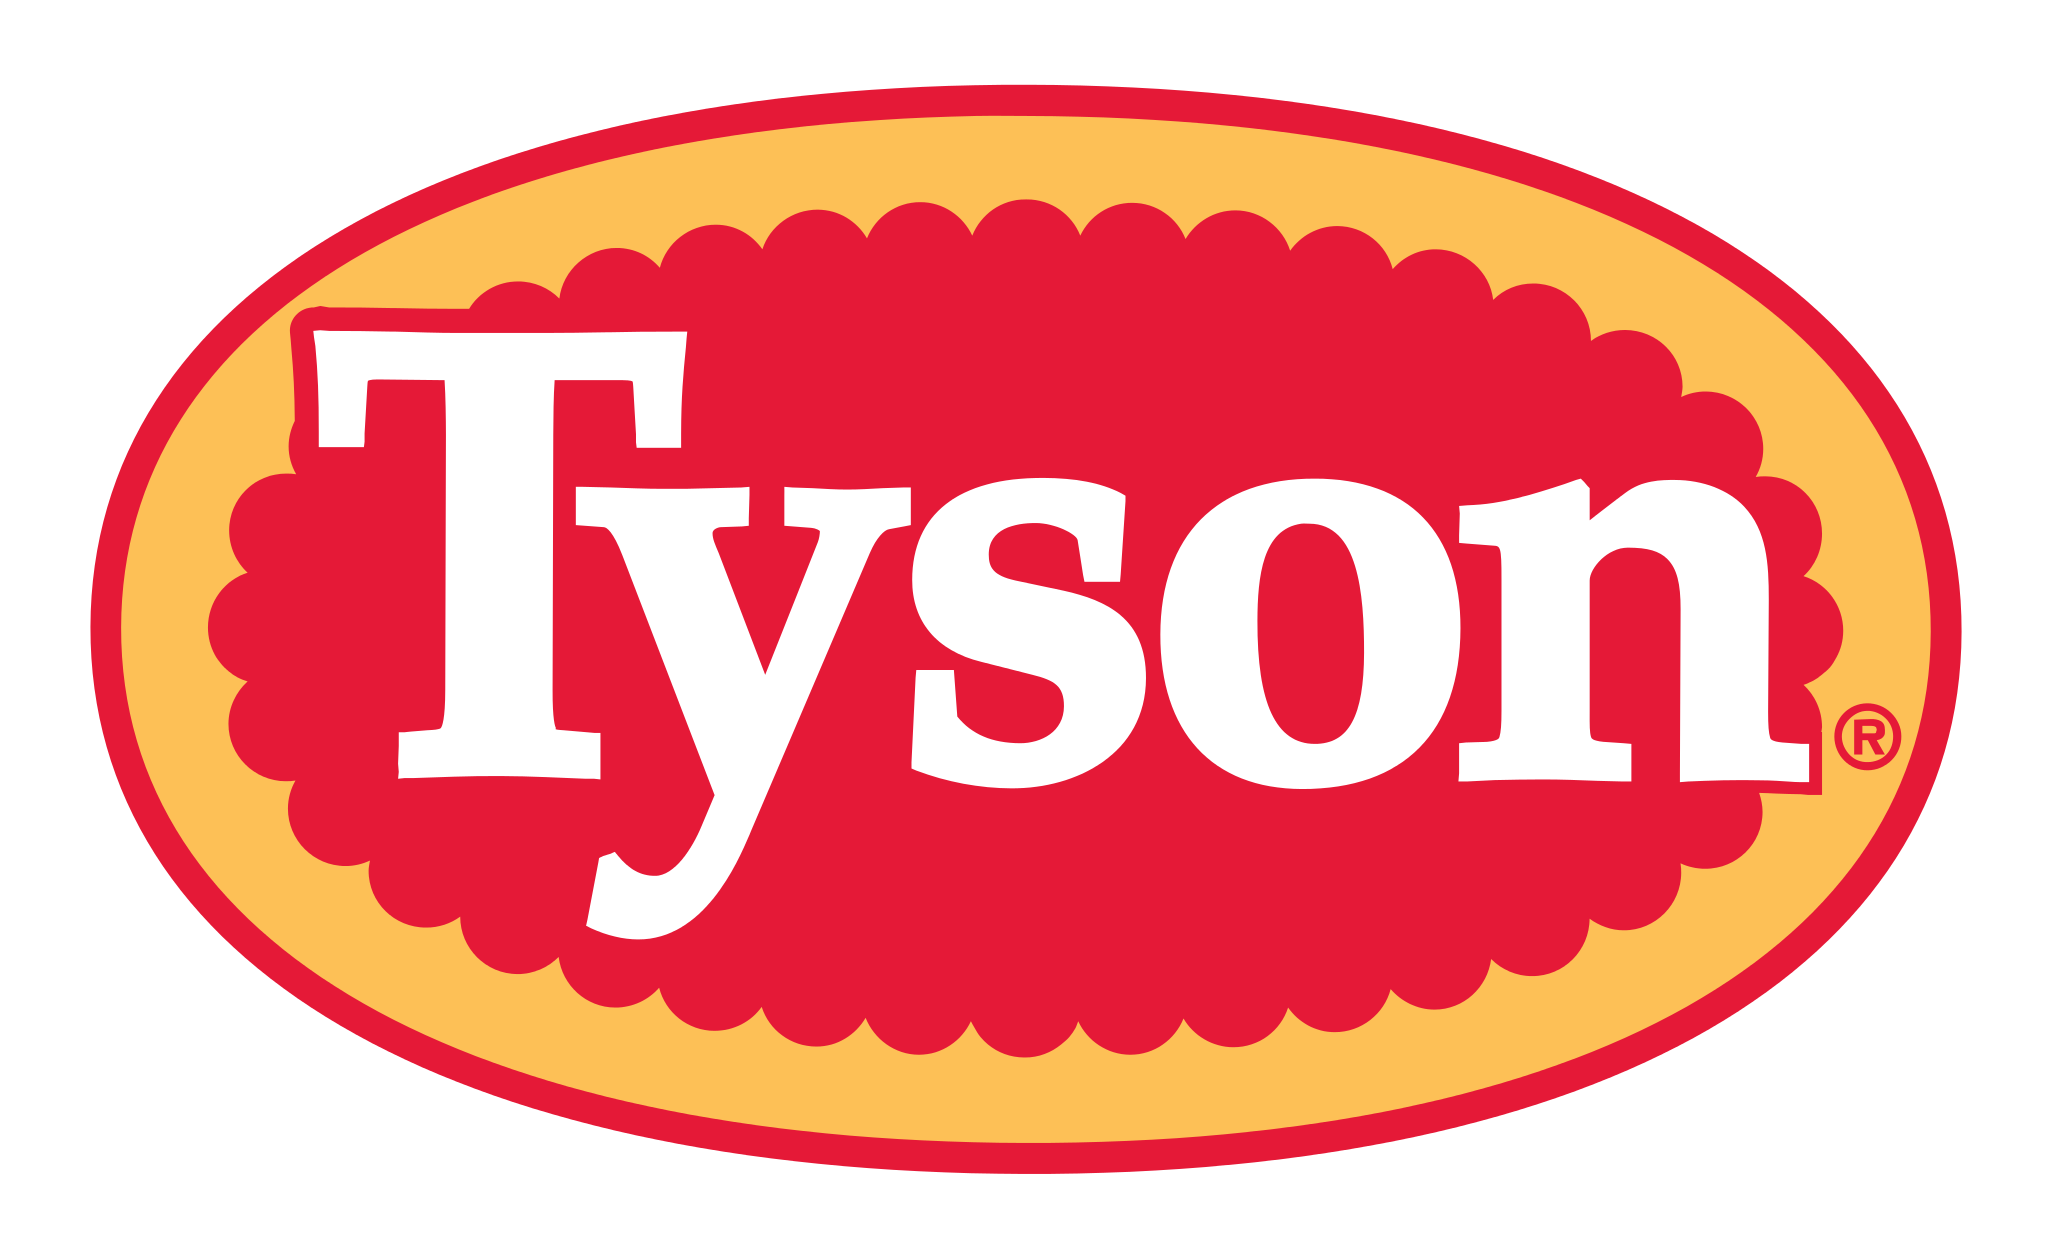 Tyson Foods Logo PNG Image.